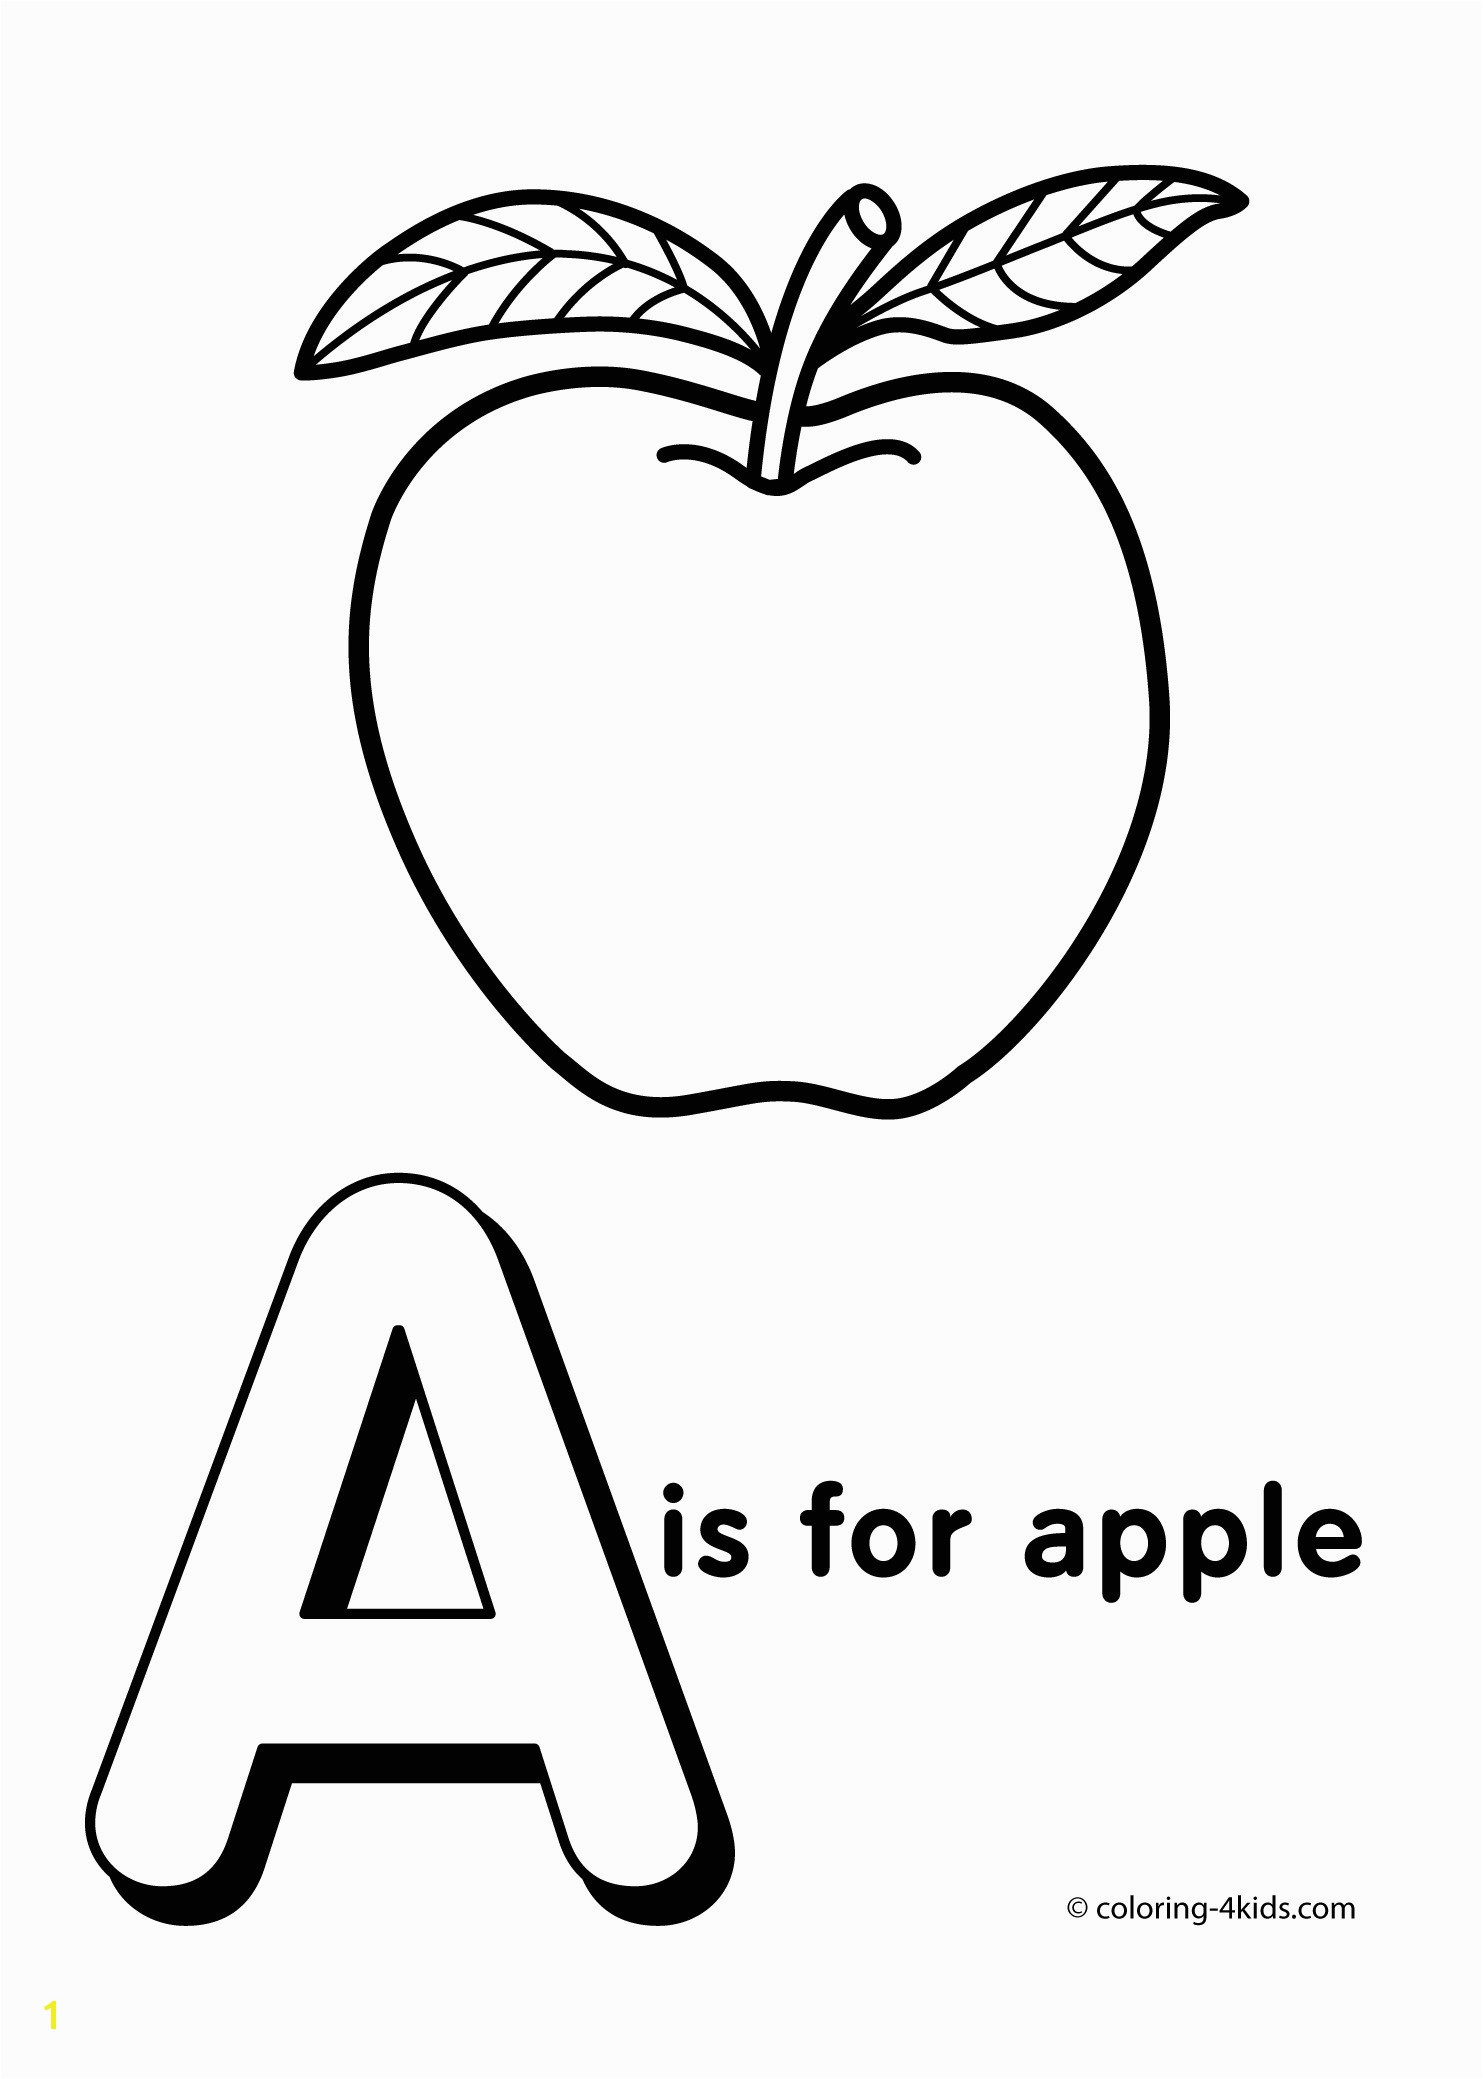 Apple Coloring Pages Food Coloring Pages Elegant Photos Letter A For Apple Coloring